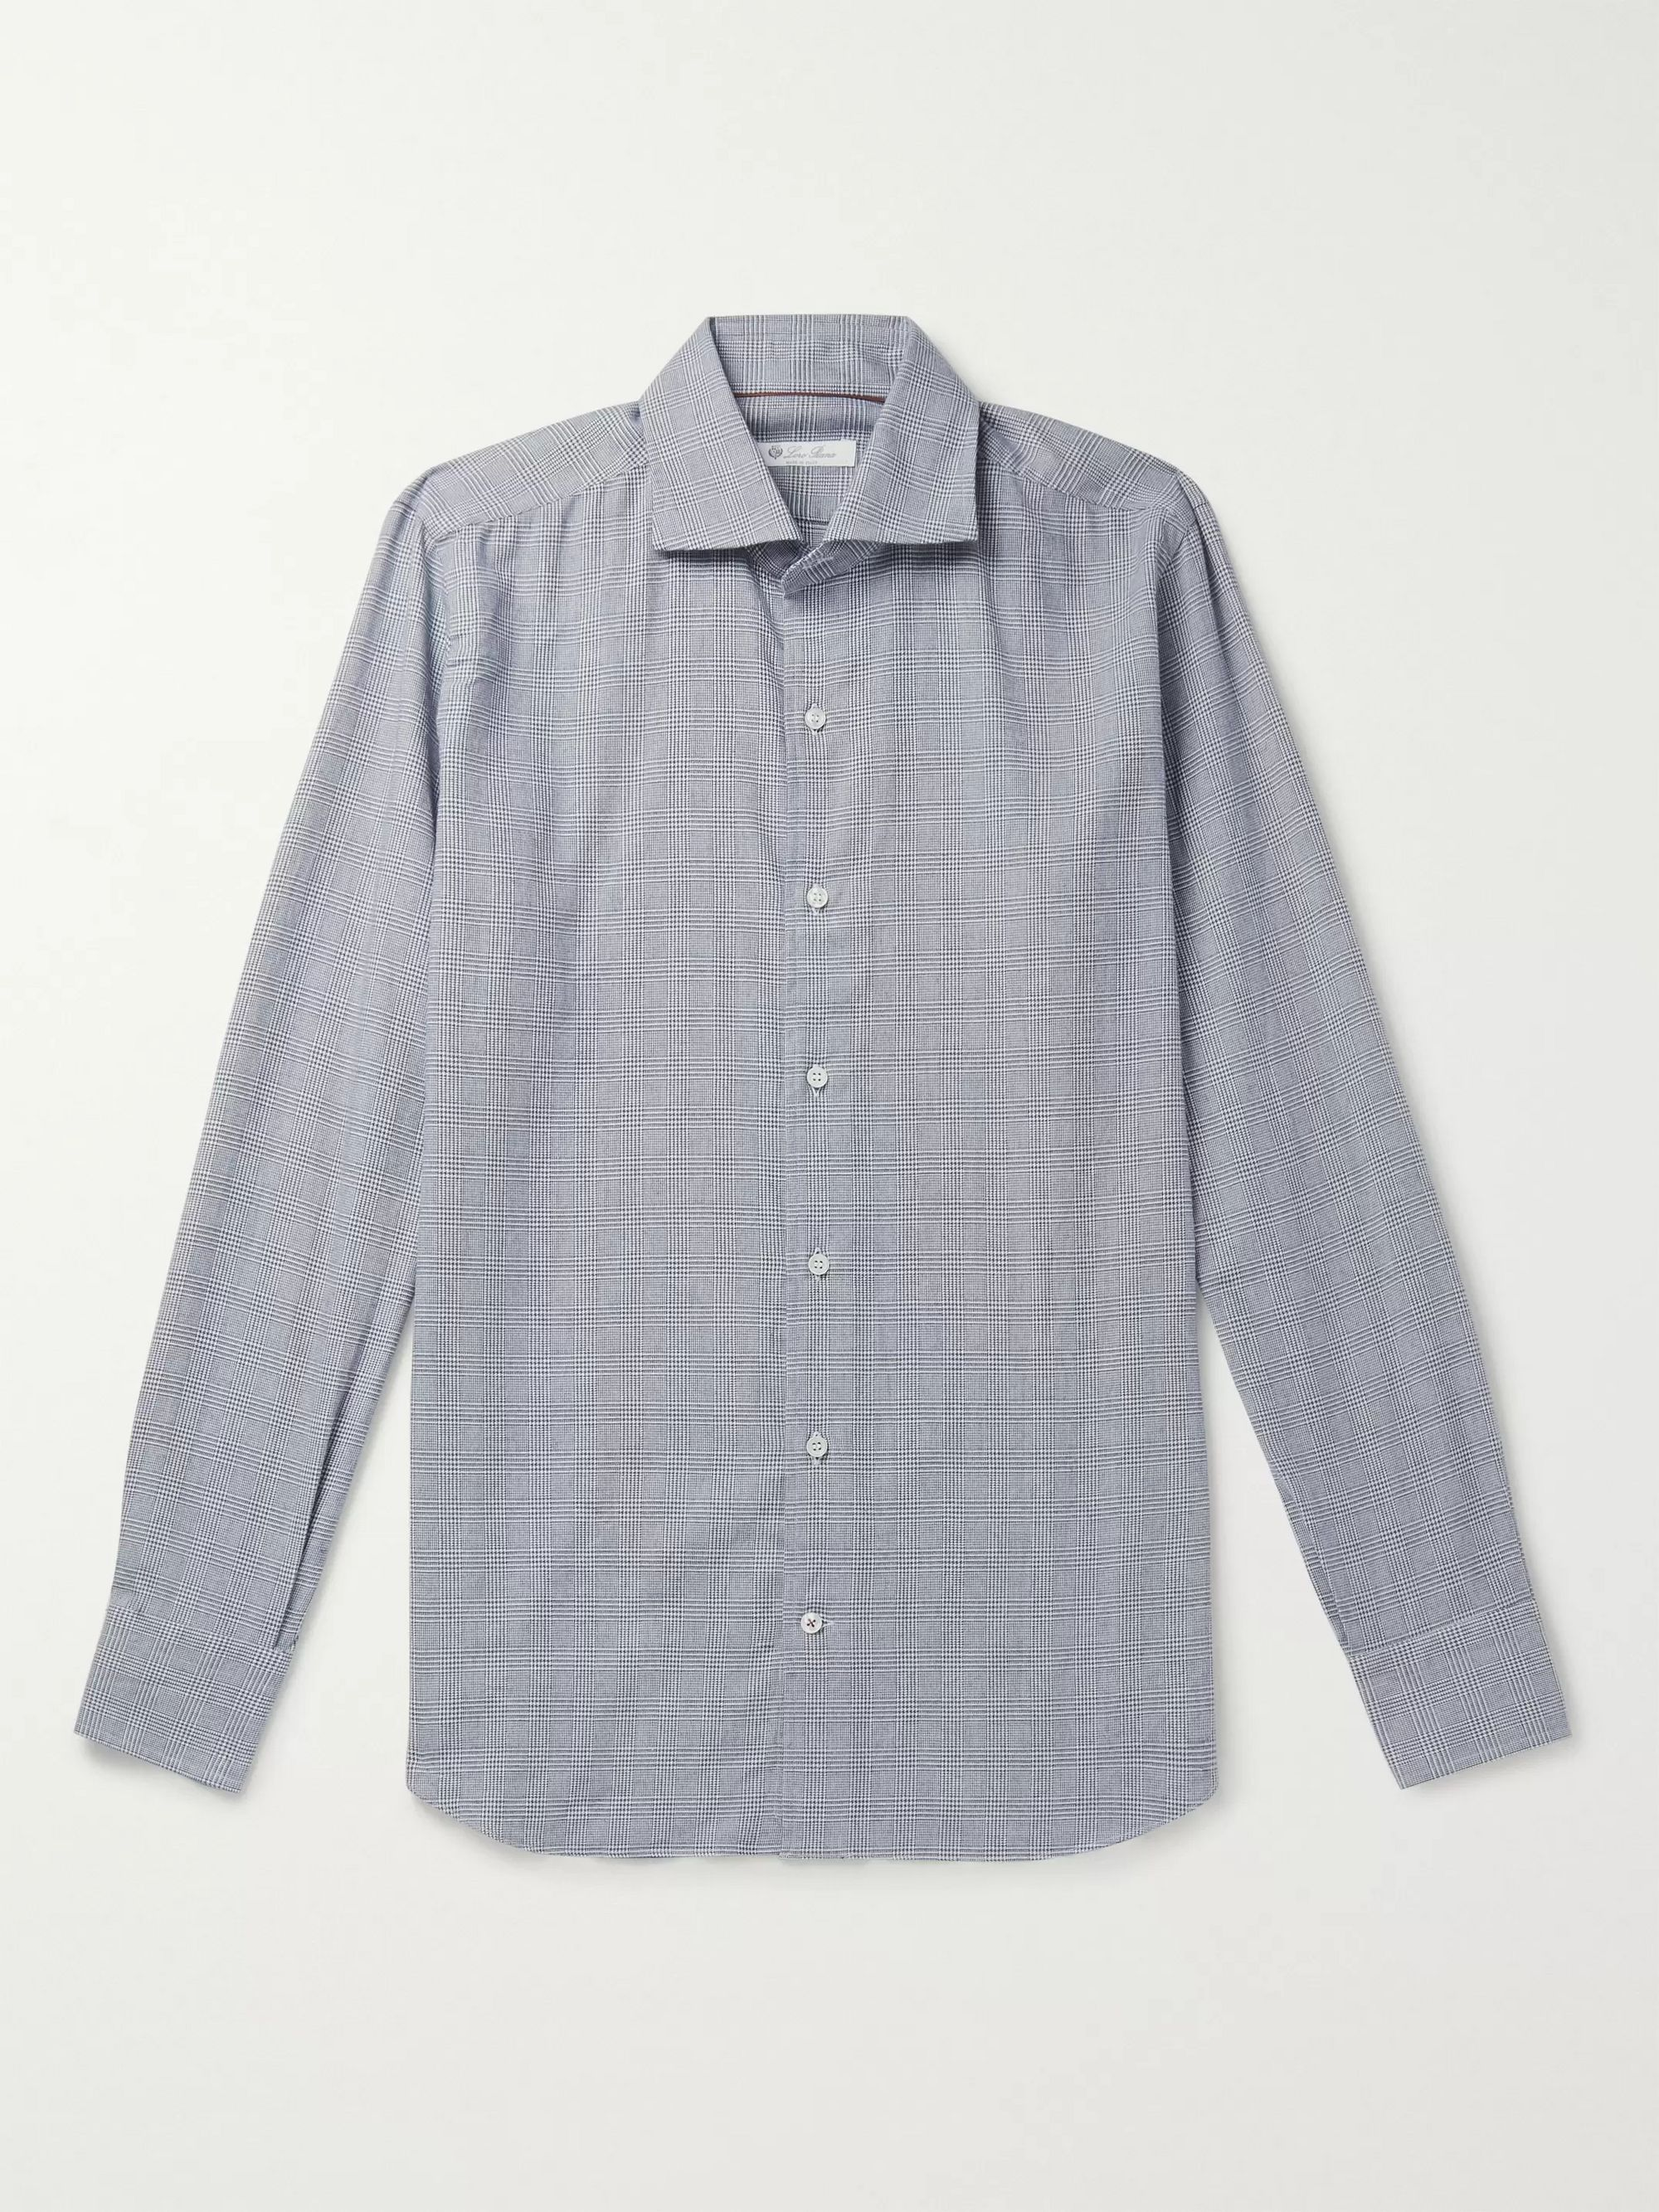 Loro Piana Slim-Fit Prince of Wales Checked Brushed-Cotton Shirt